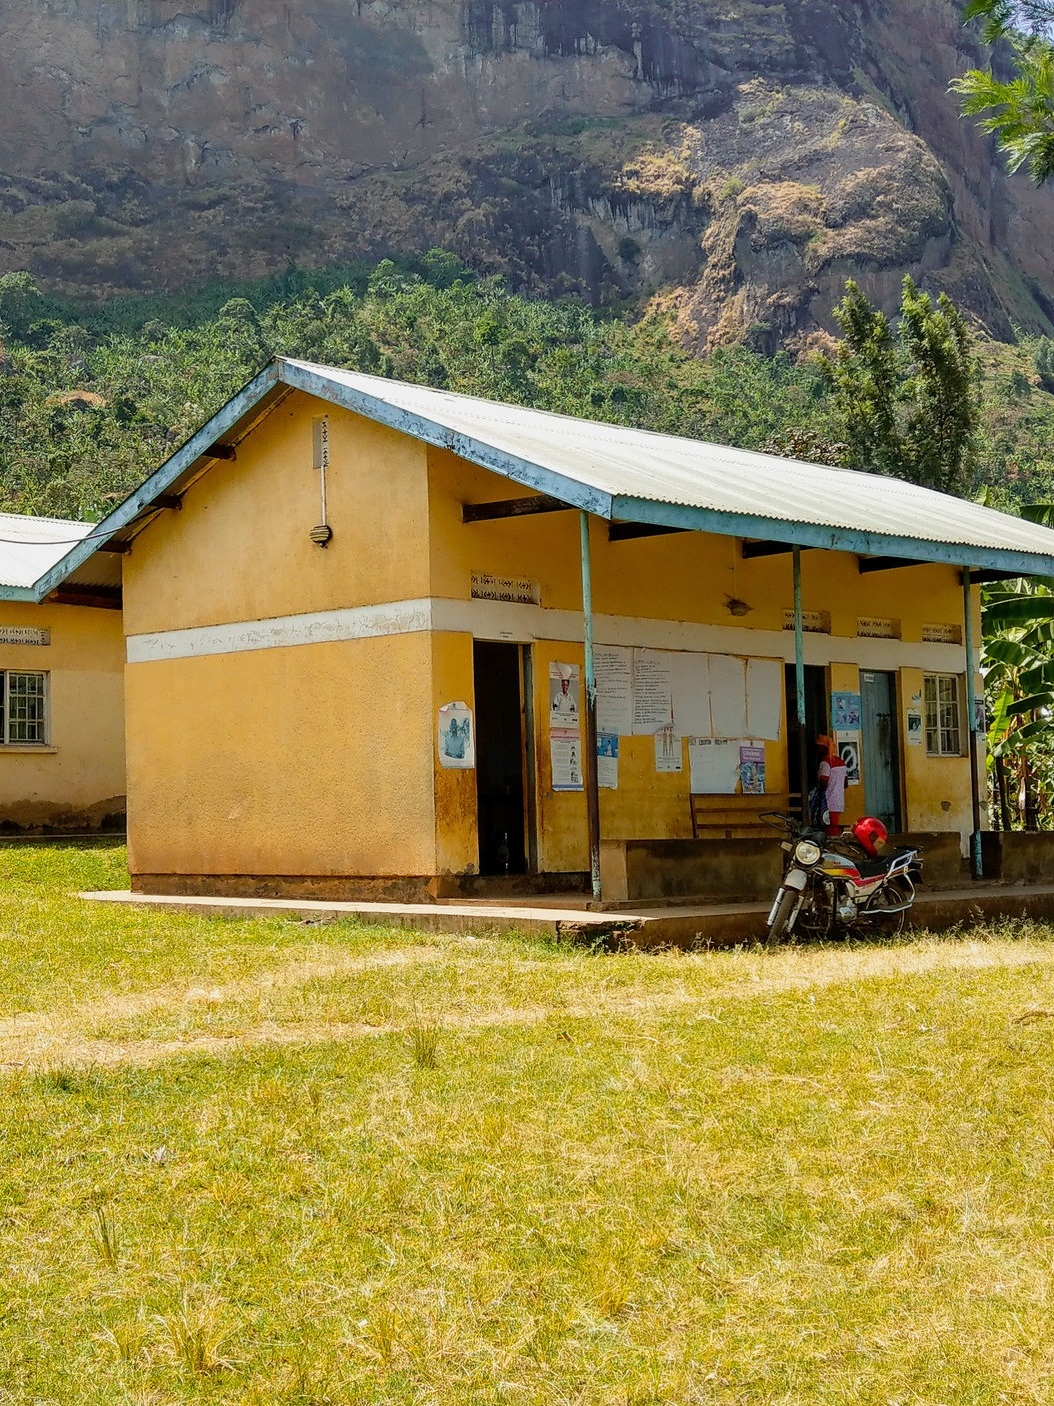 Together, they imagined what a 'future state of health care' could look like. - Left: A Health Centre Level III on the slopes of Mount Elgon.